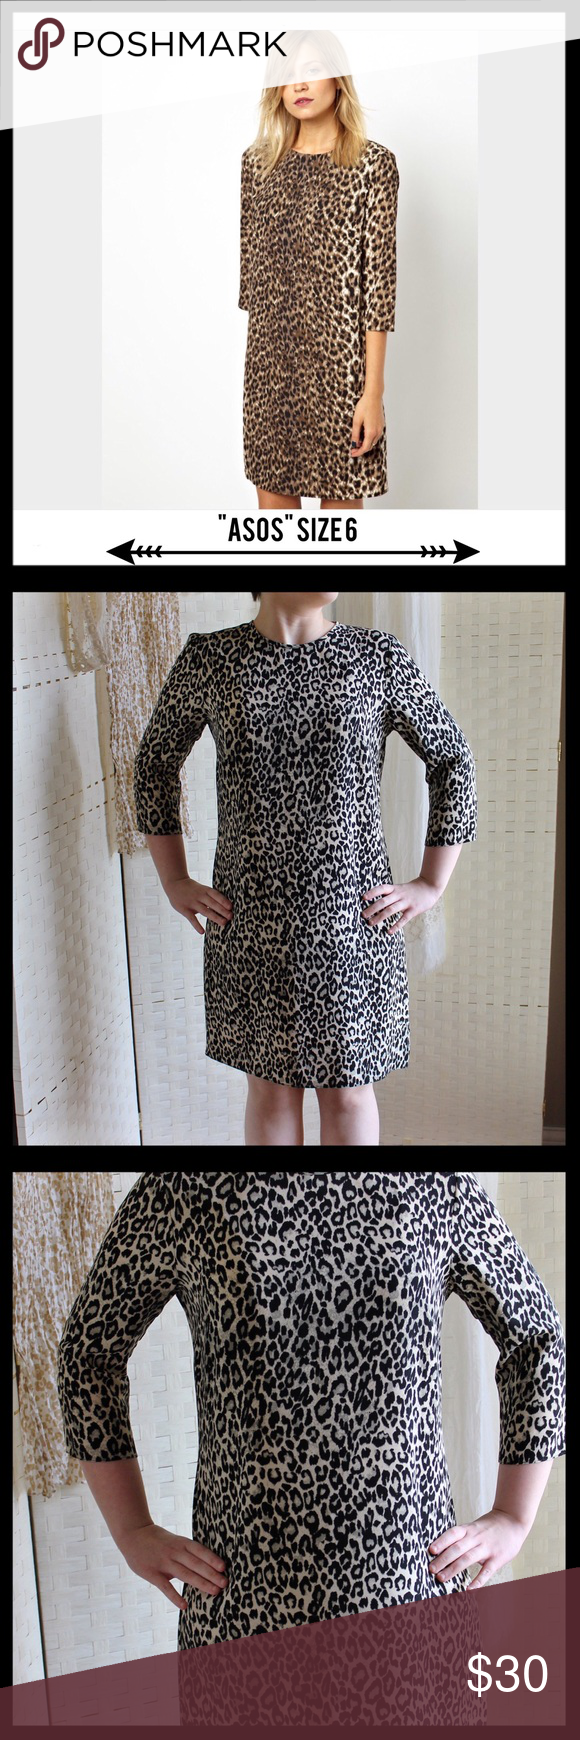 """ASOS Leopard Print Shift Dress ASOS leopard print shift dress in a size 6.  In like new condition. Has back zipper closure and eye and hook.  Has 3/4th sleeves.  Measures 20"""" from armpit to armpit and 34"""" in length.  Model is a size small and 5'3"""" for reference.  100% polyester. Comes from a smoke free home. ASOS Dresses"""